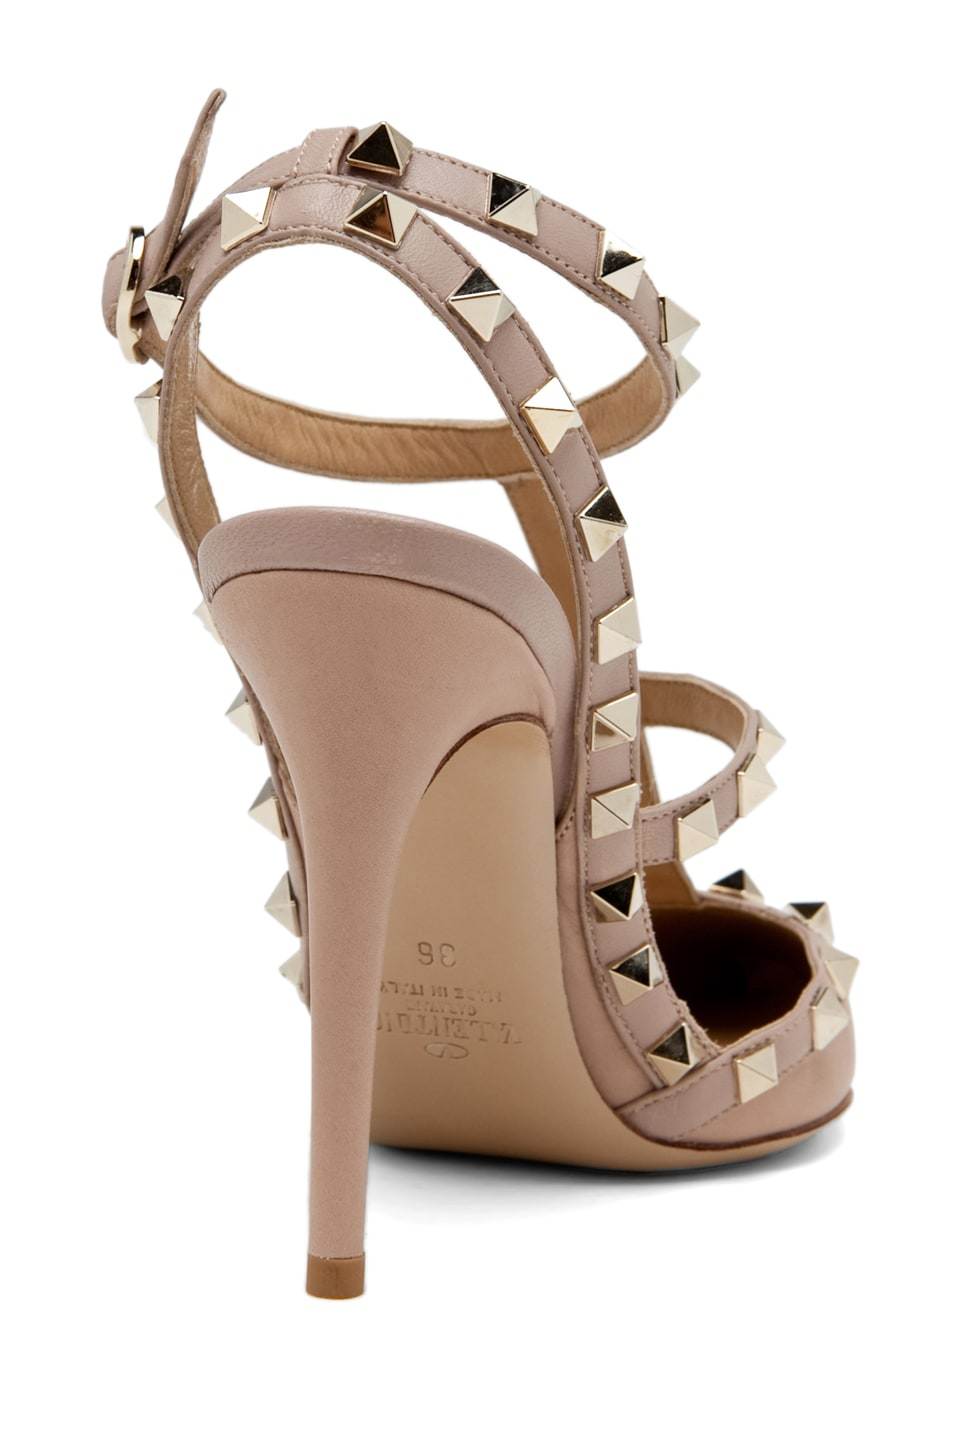 Image 3 of Valentino Rockstud Leather Slingbacks T.100 in Powder